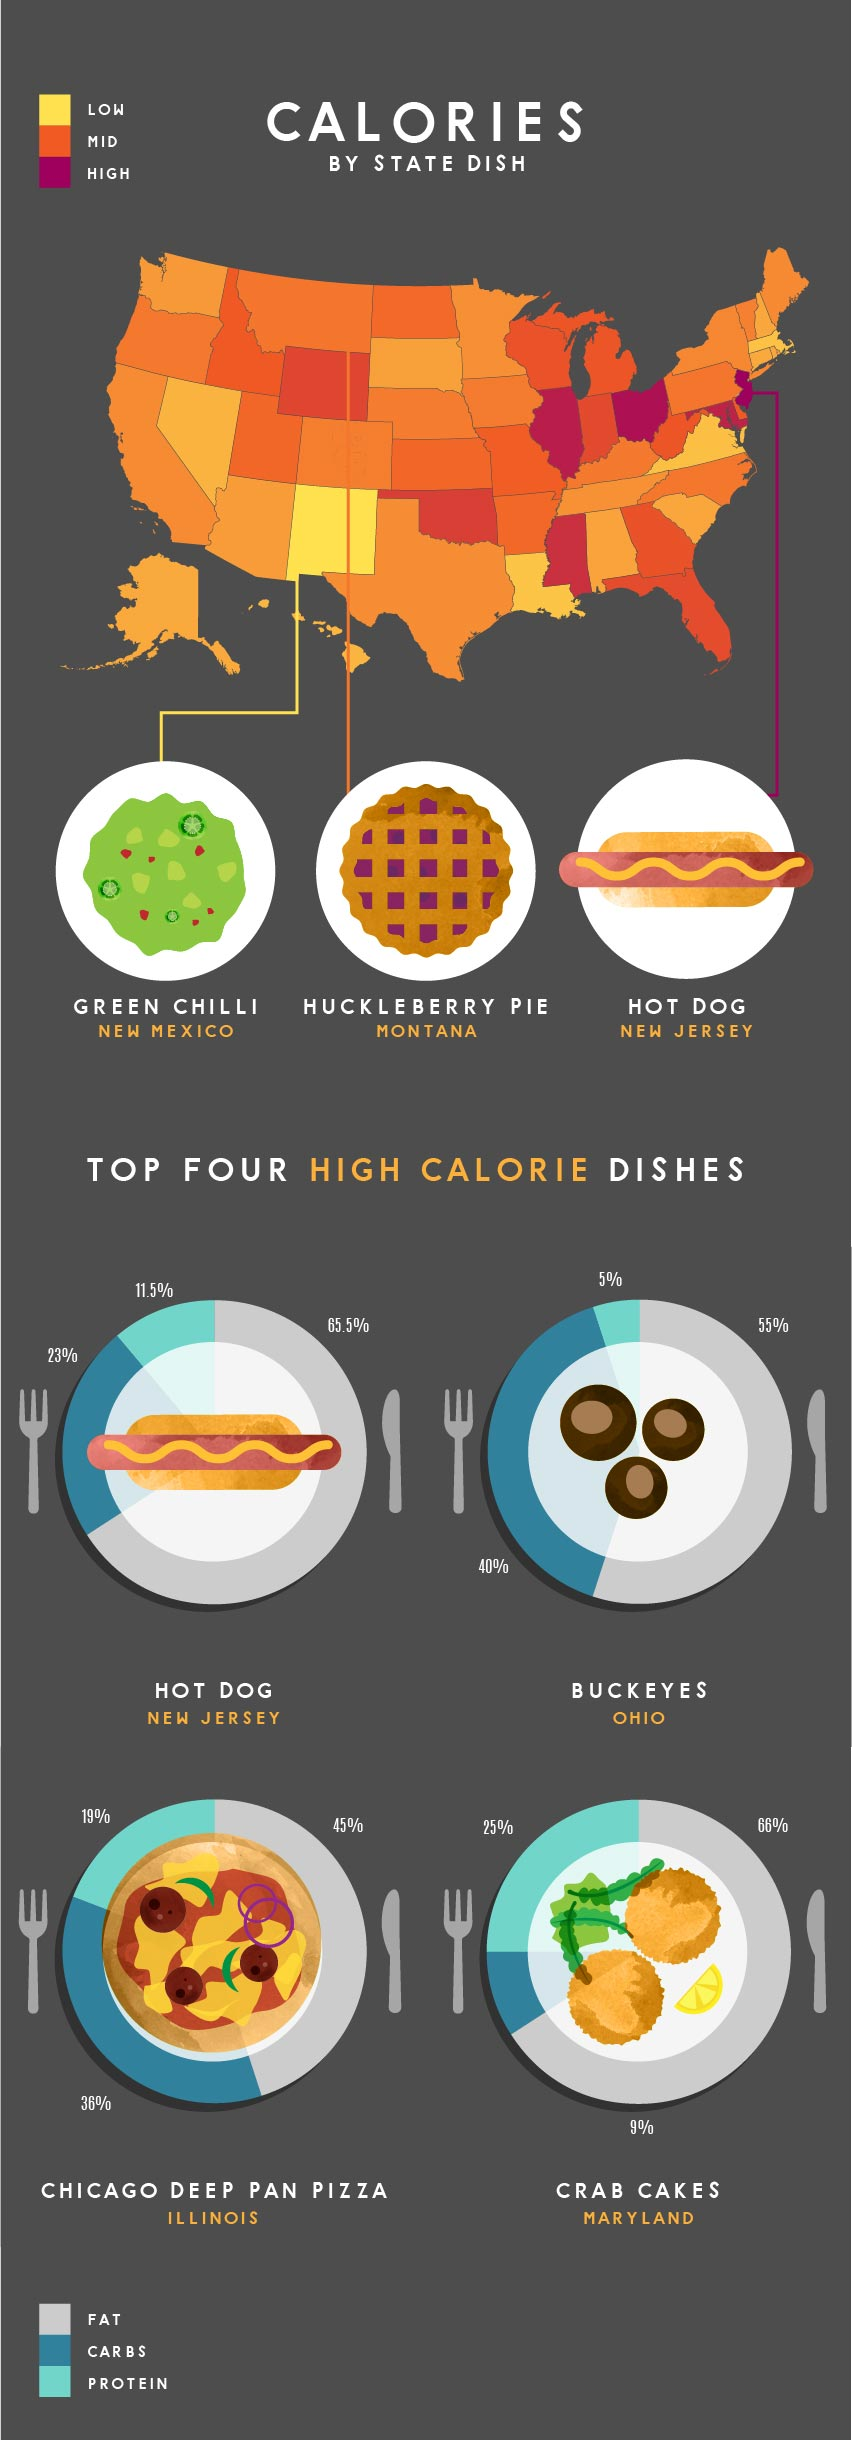 calories in food by state graphic